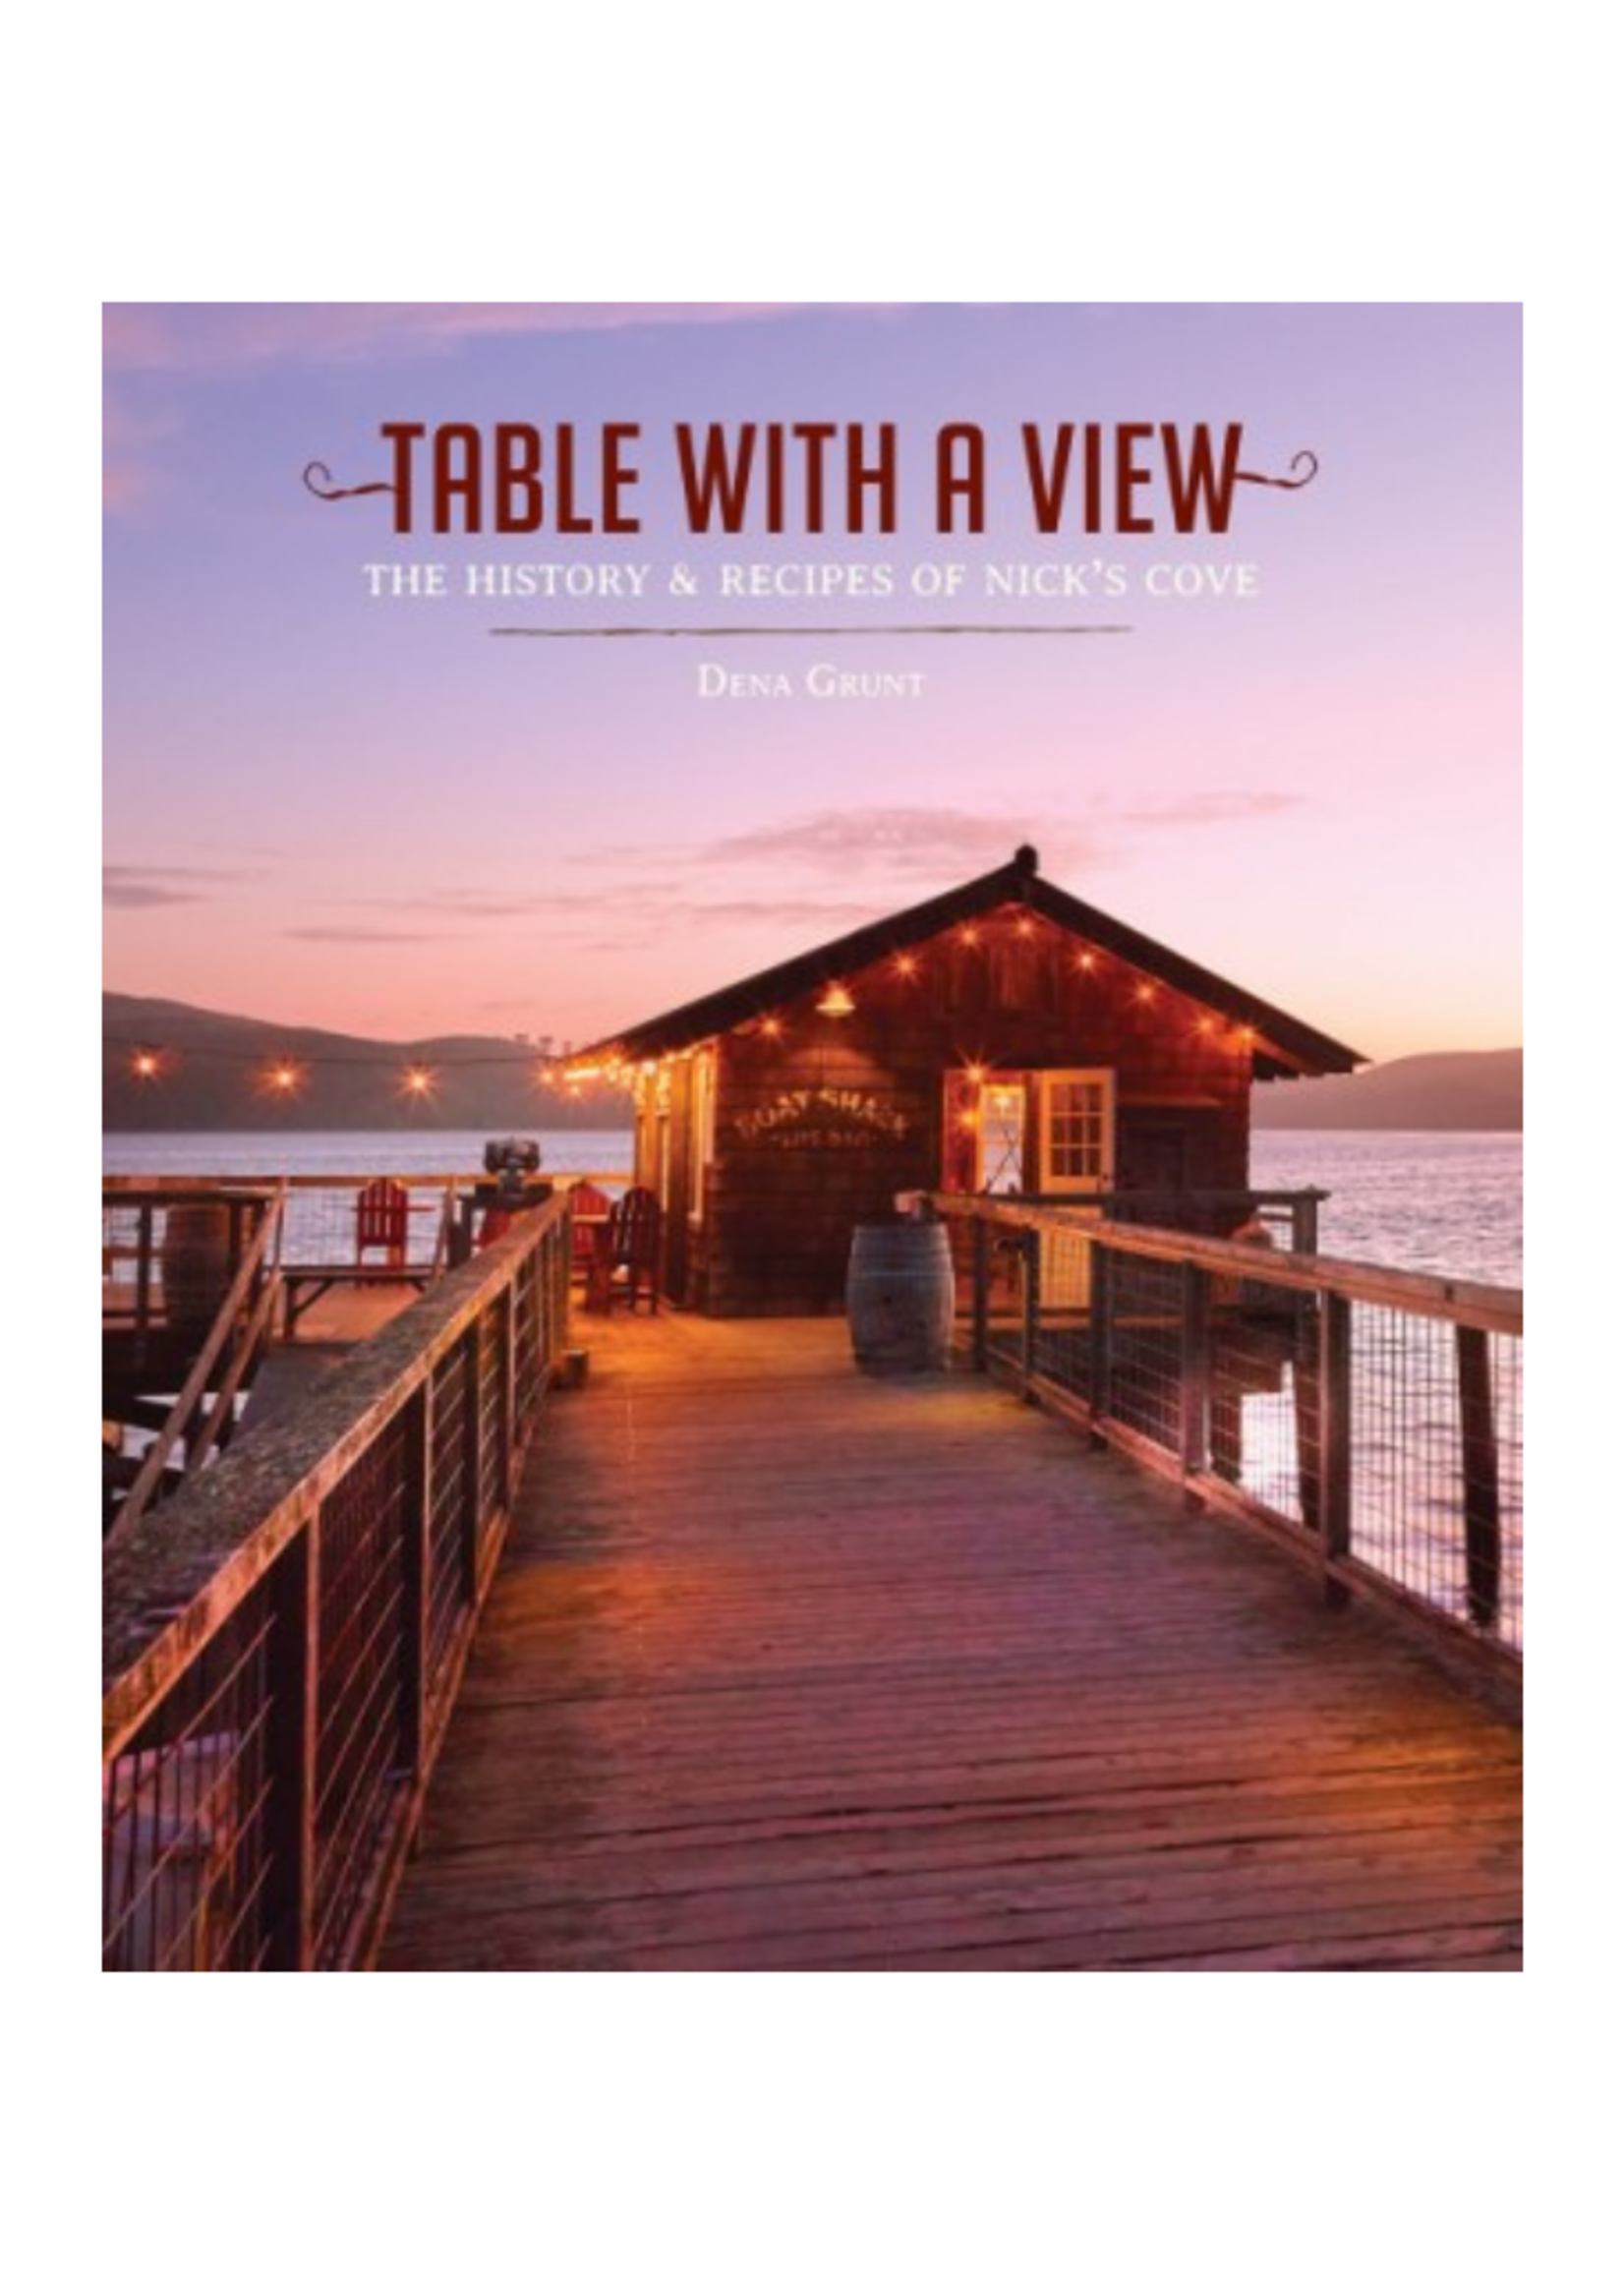 Abrams Sterart Tabori&Chang Table with a View: the Hisory and Recipes of Nick's Cove